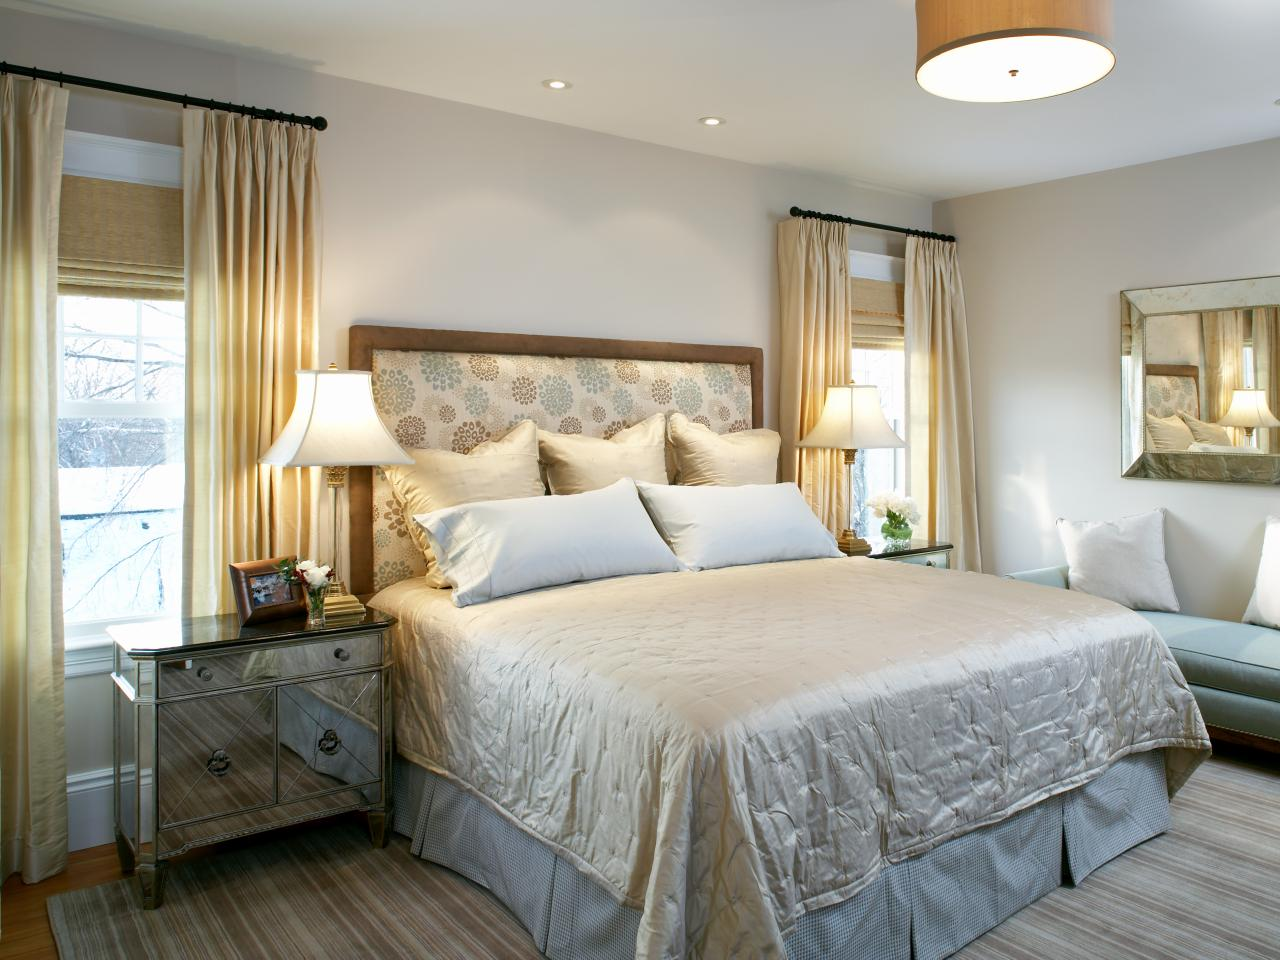 Photos hgtv - Grey and gold bedroom ...